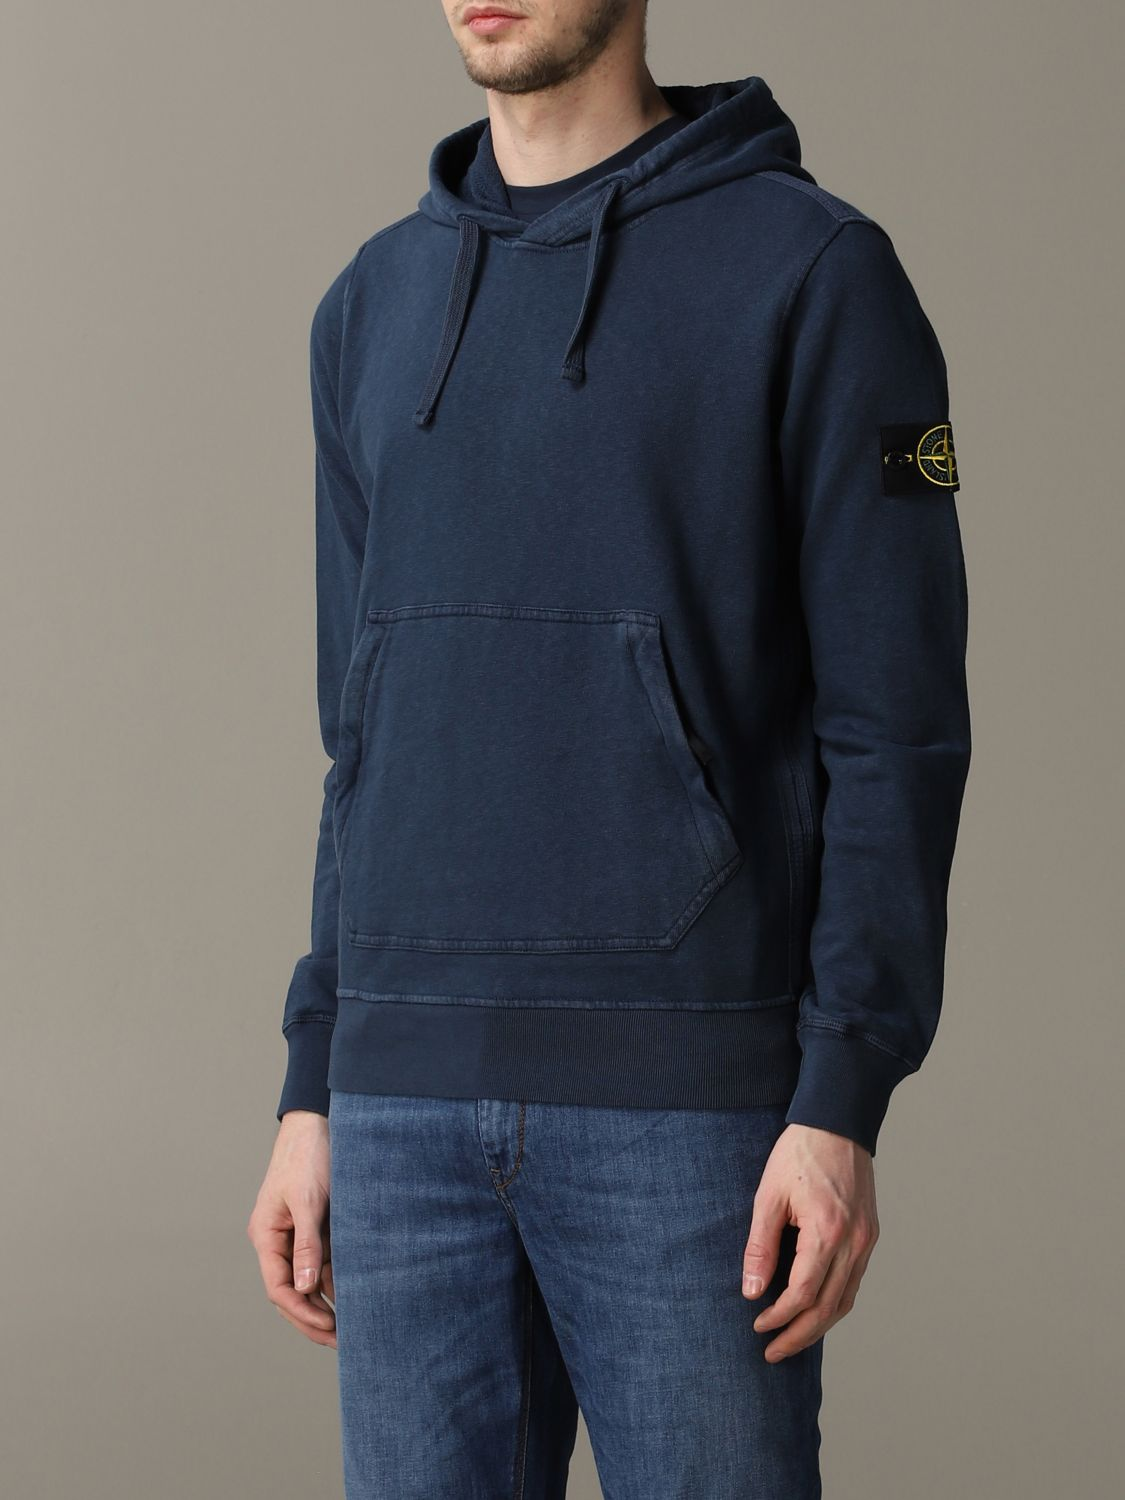 Sweatshirt men Stone Island avion 4